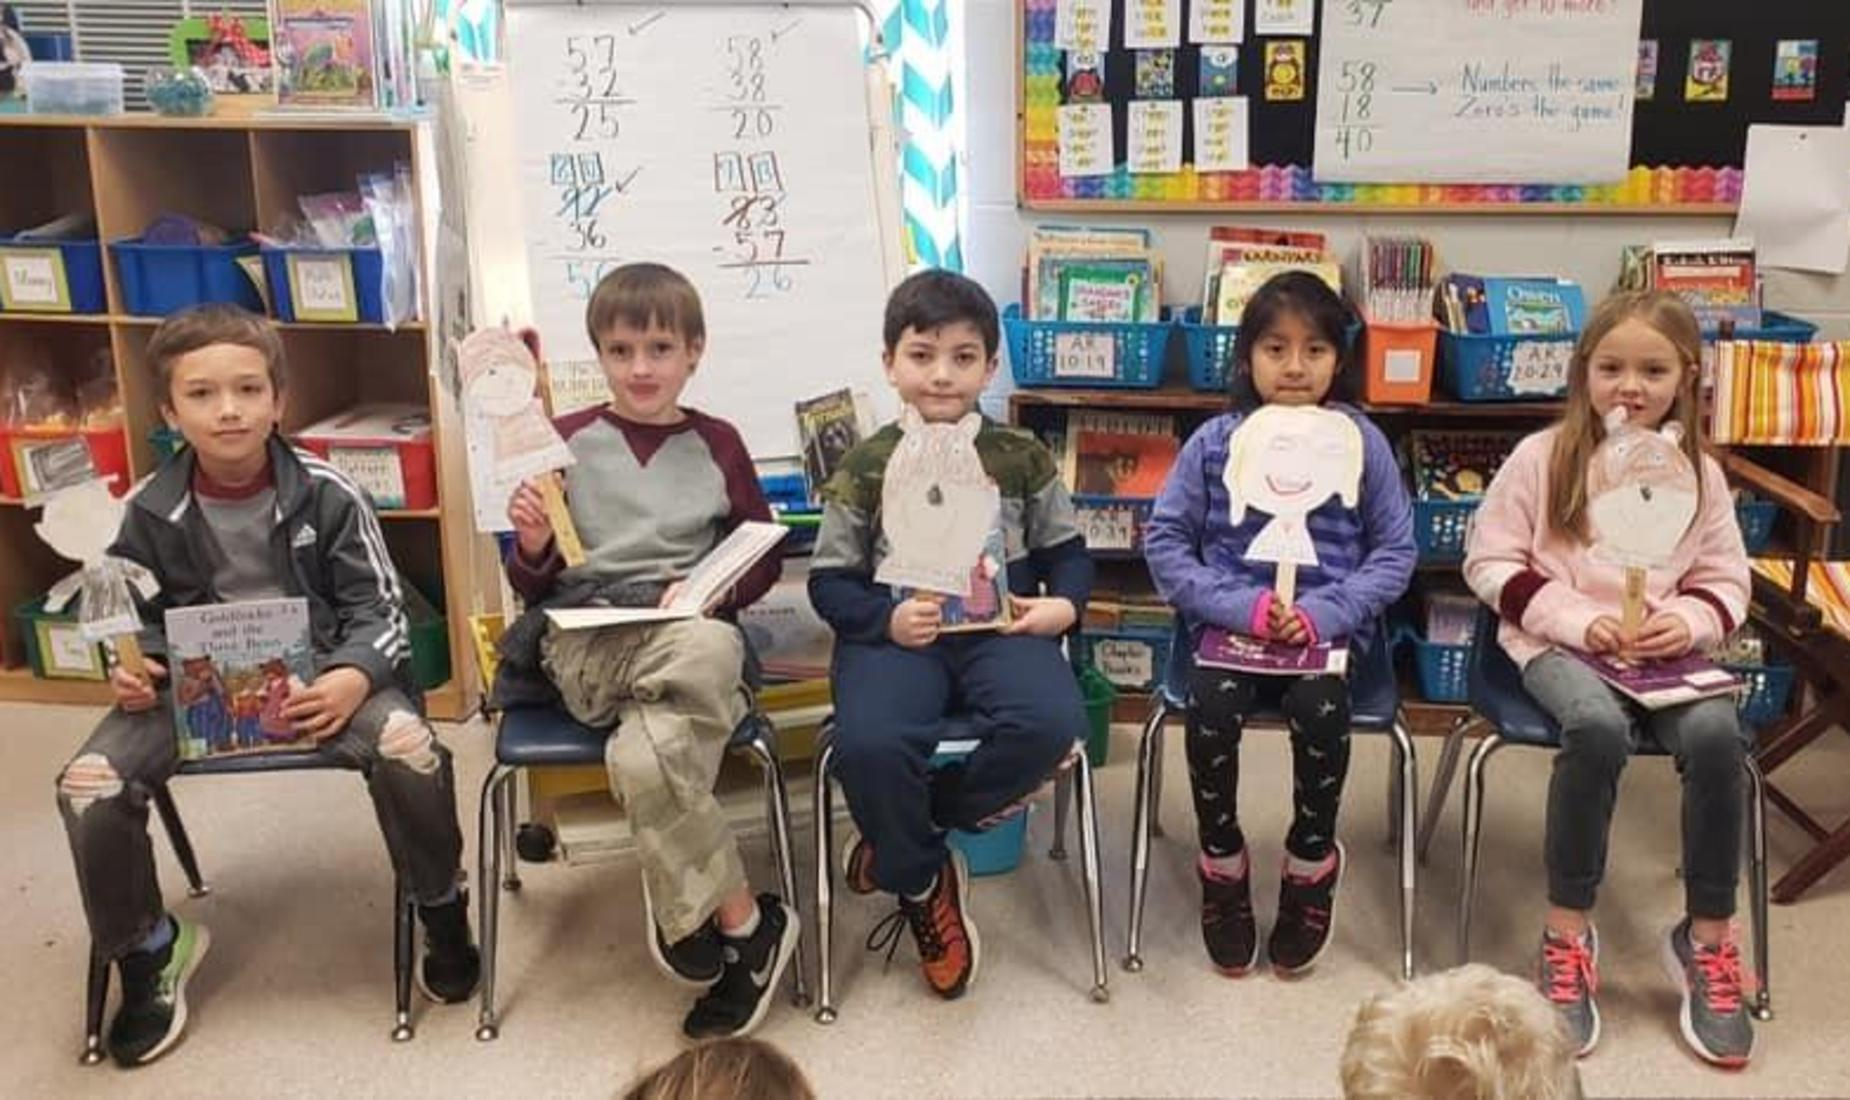 Students participating in reader's theater